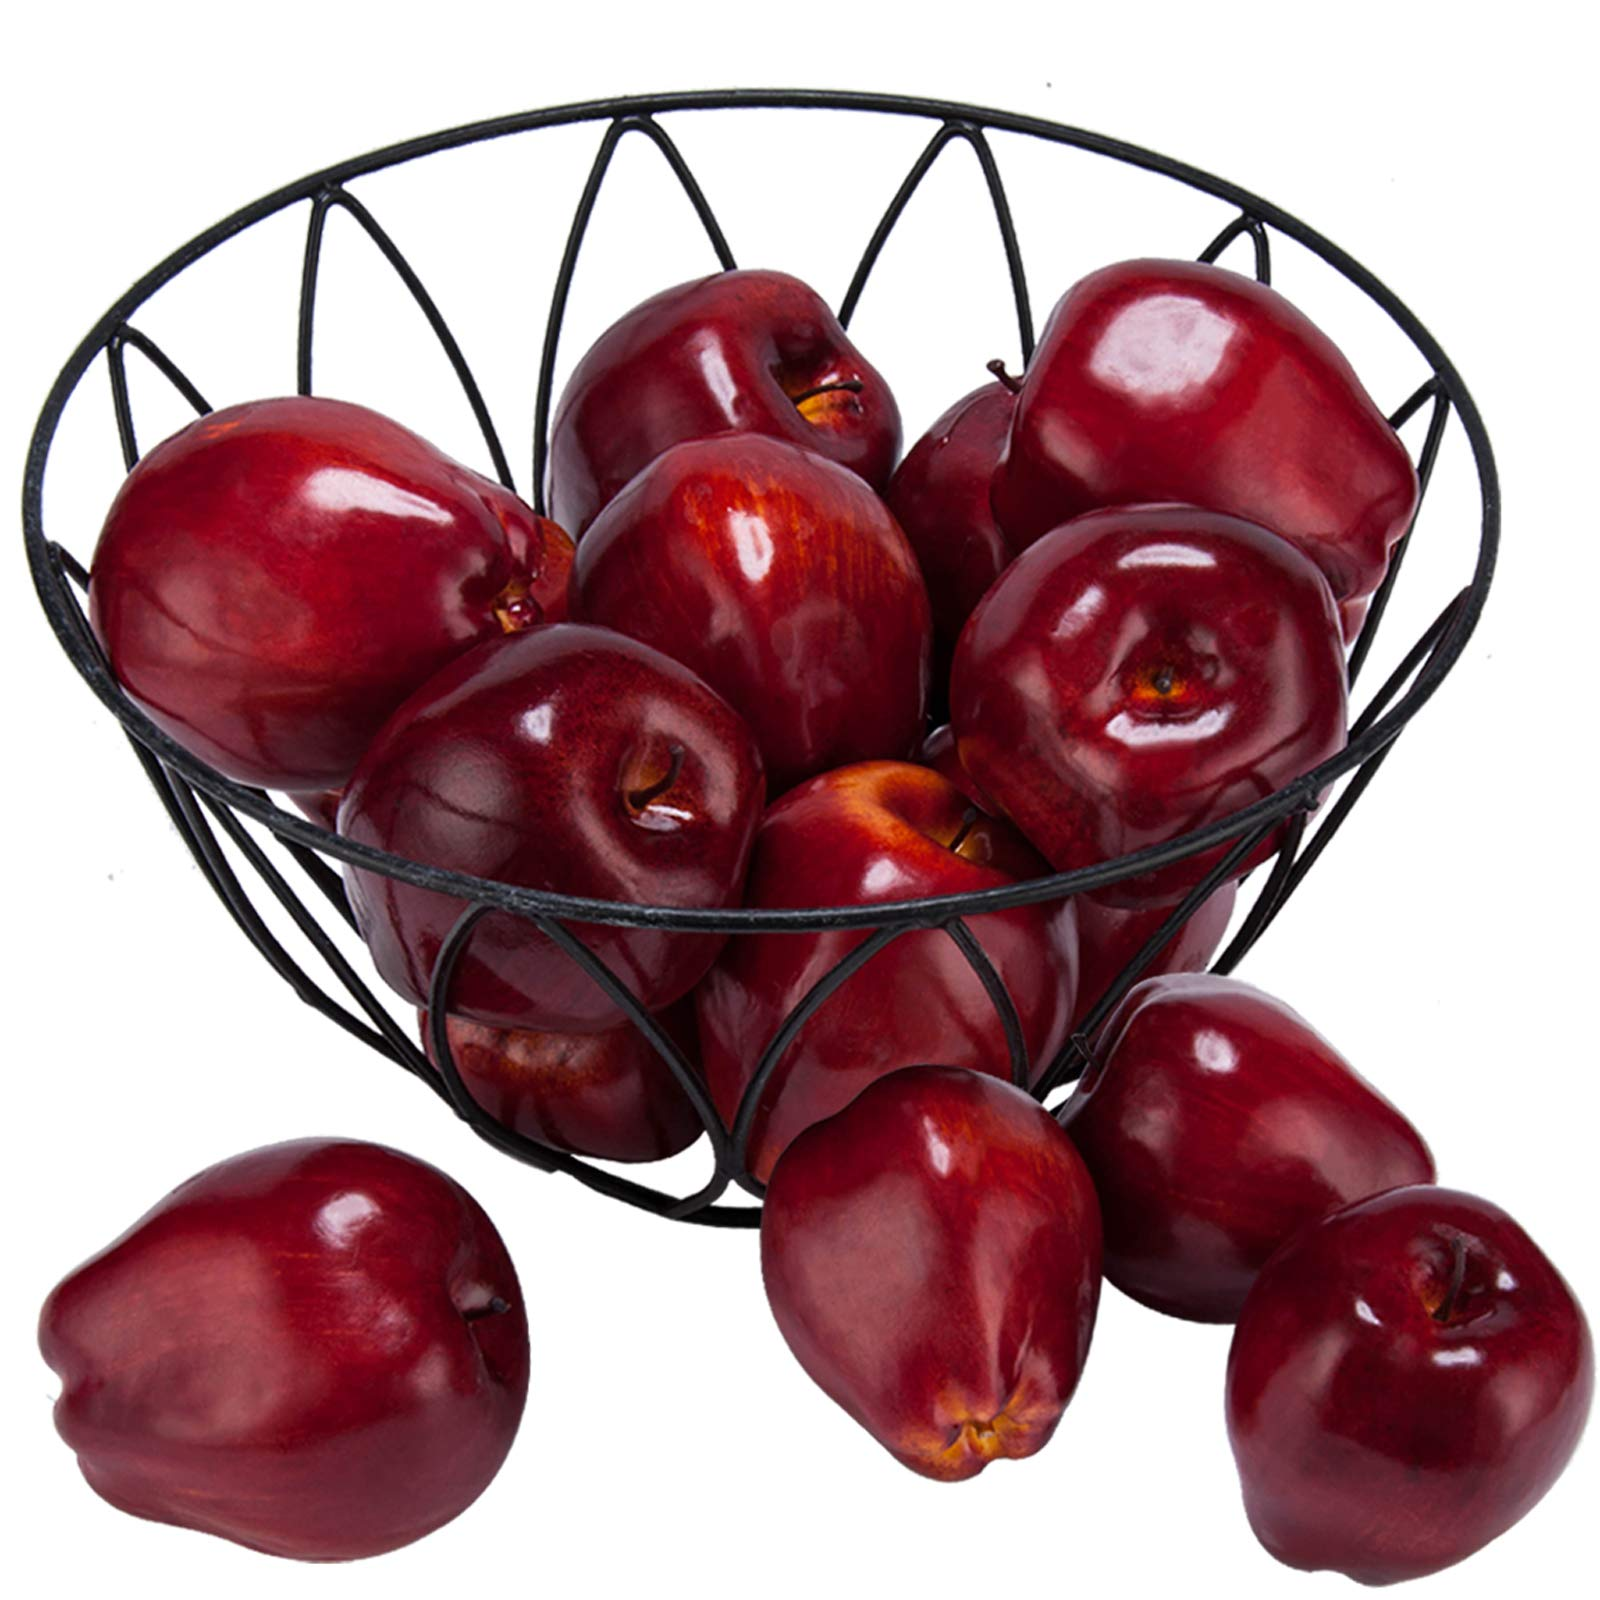 """Toopify 16PCS Artificial Red Apples, Fake Fruit Lifelike Simulation Apples for Home Kitchen Table Basket Decoration, 3.43"""" x 2.95"""""""